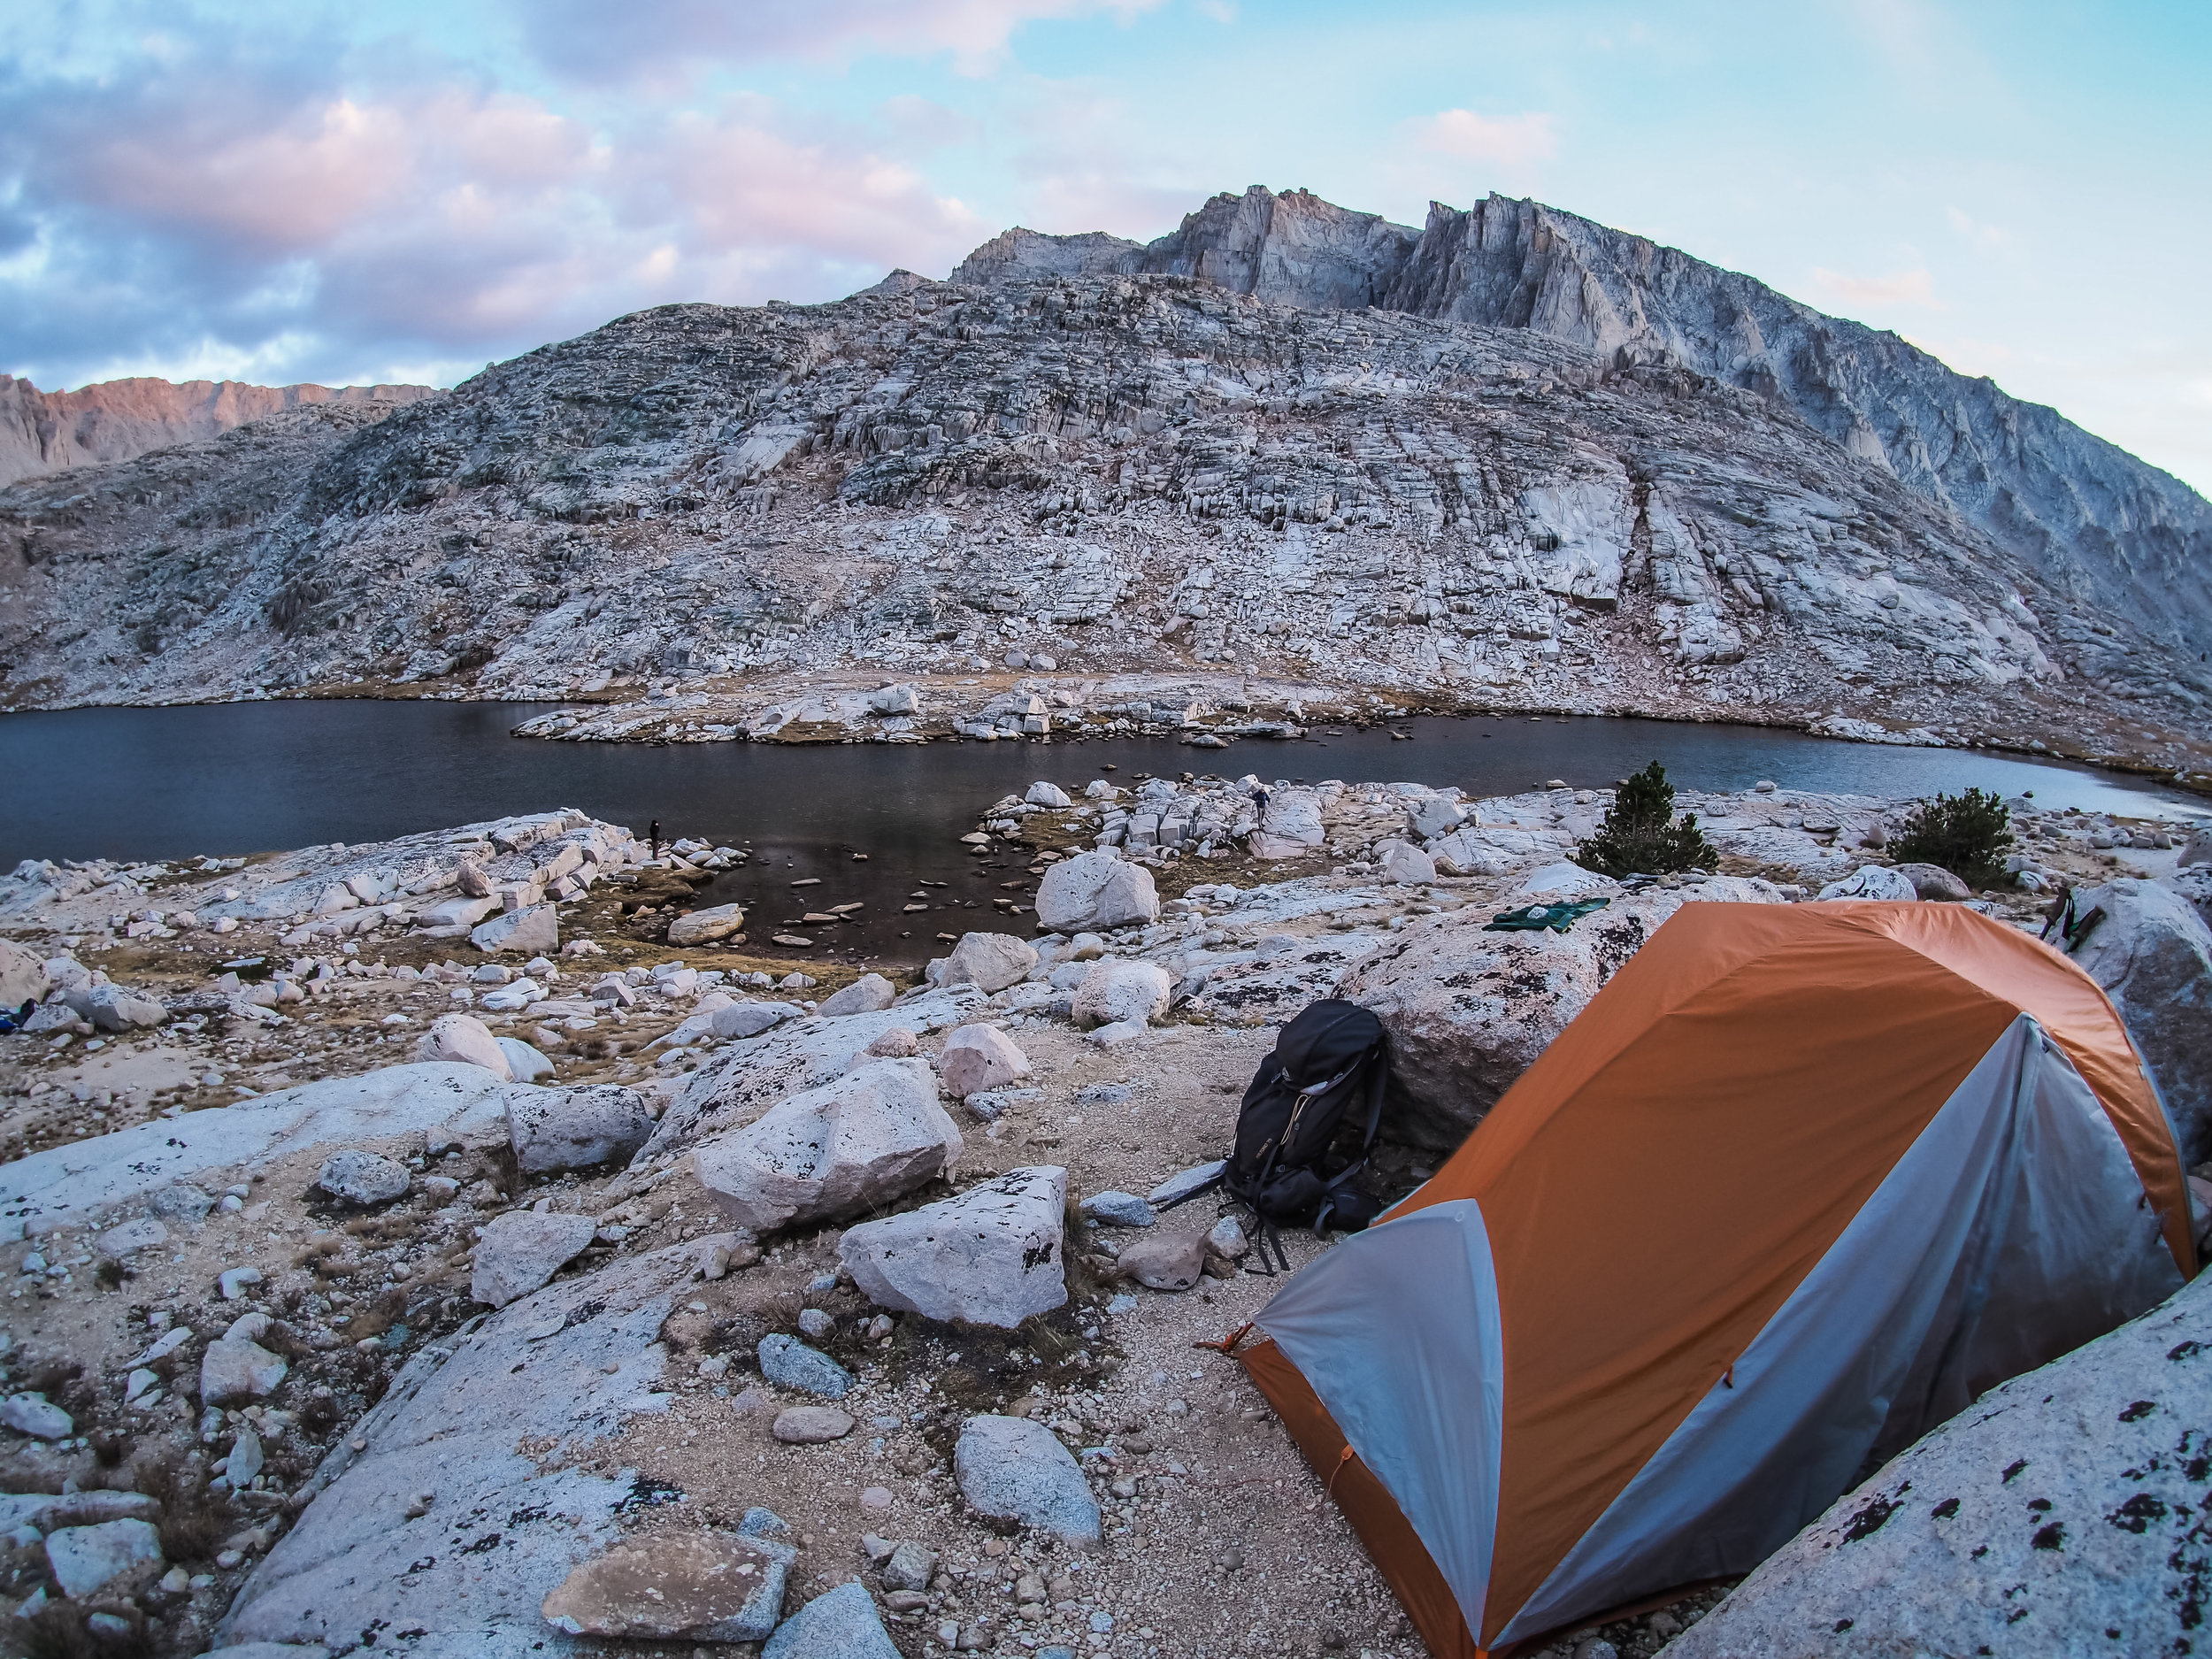 Final night on the JMT